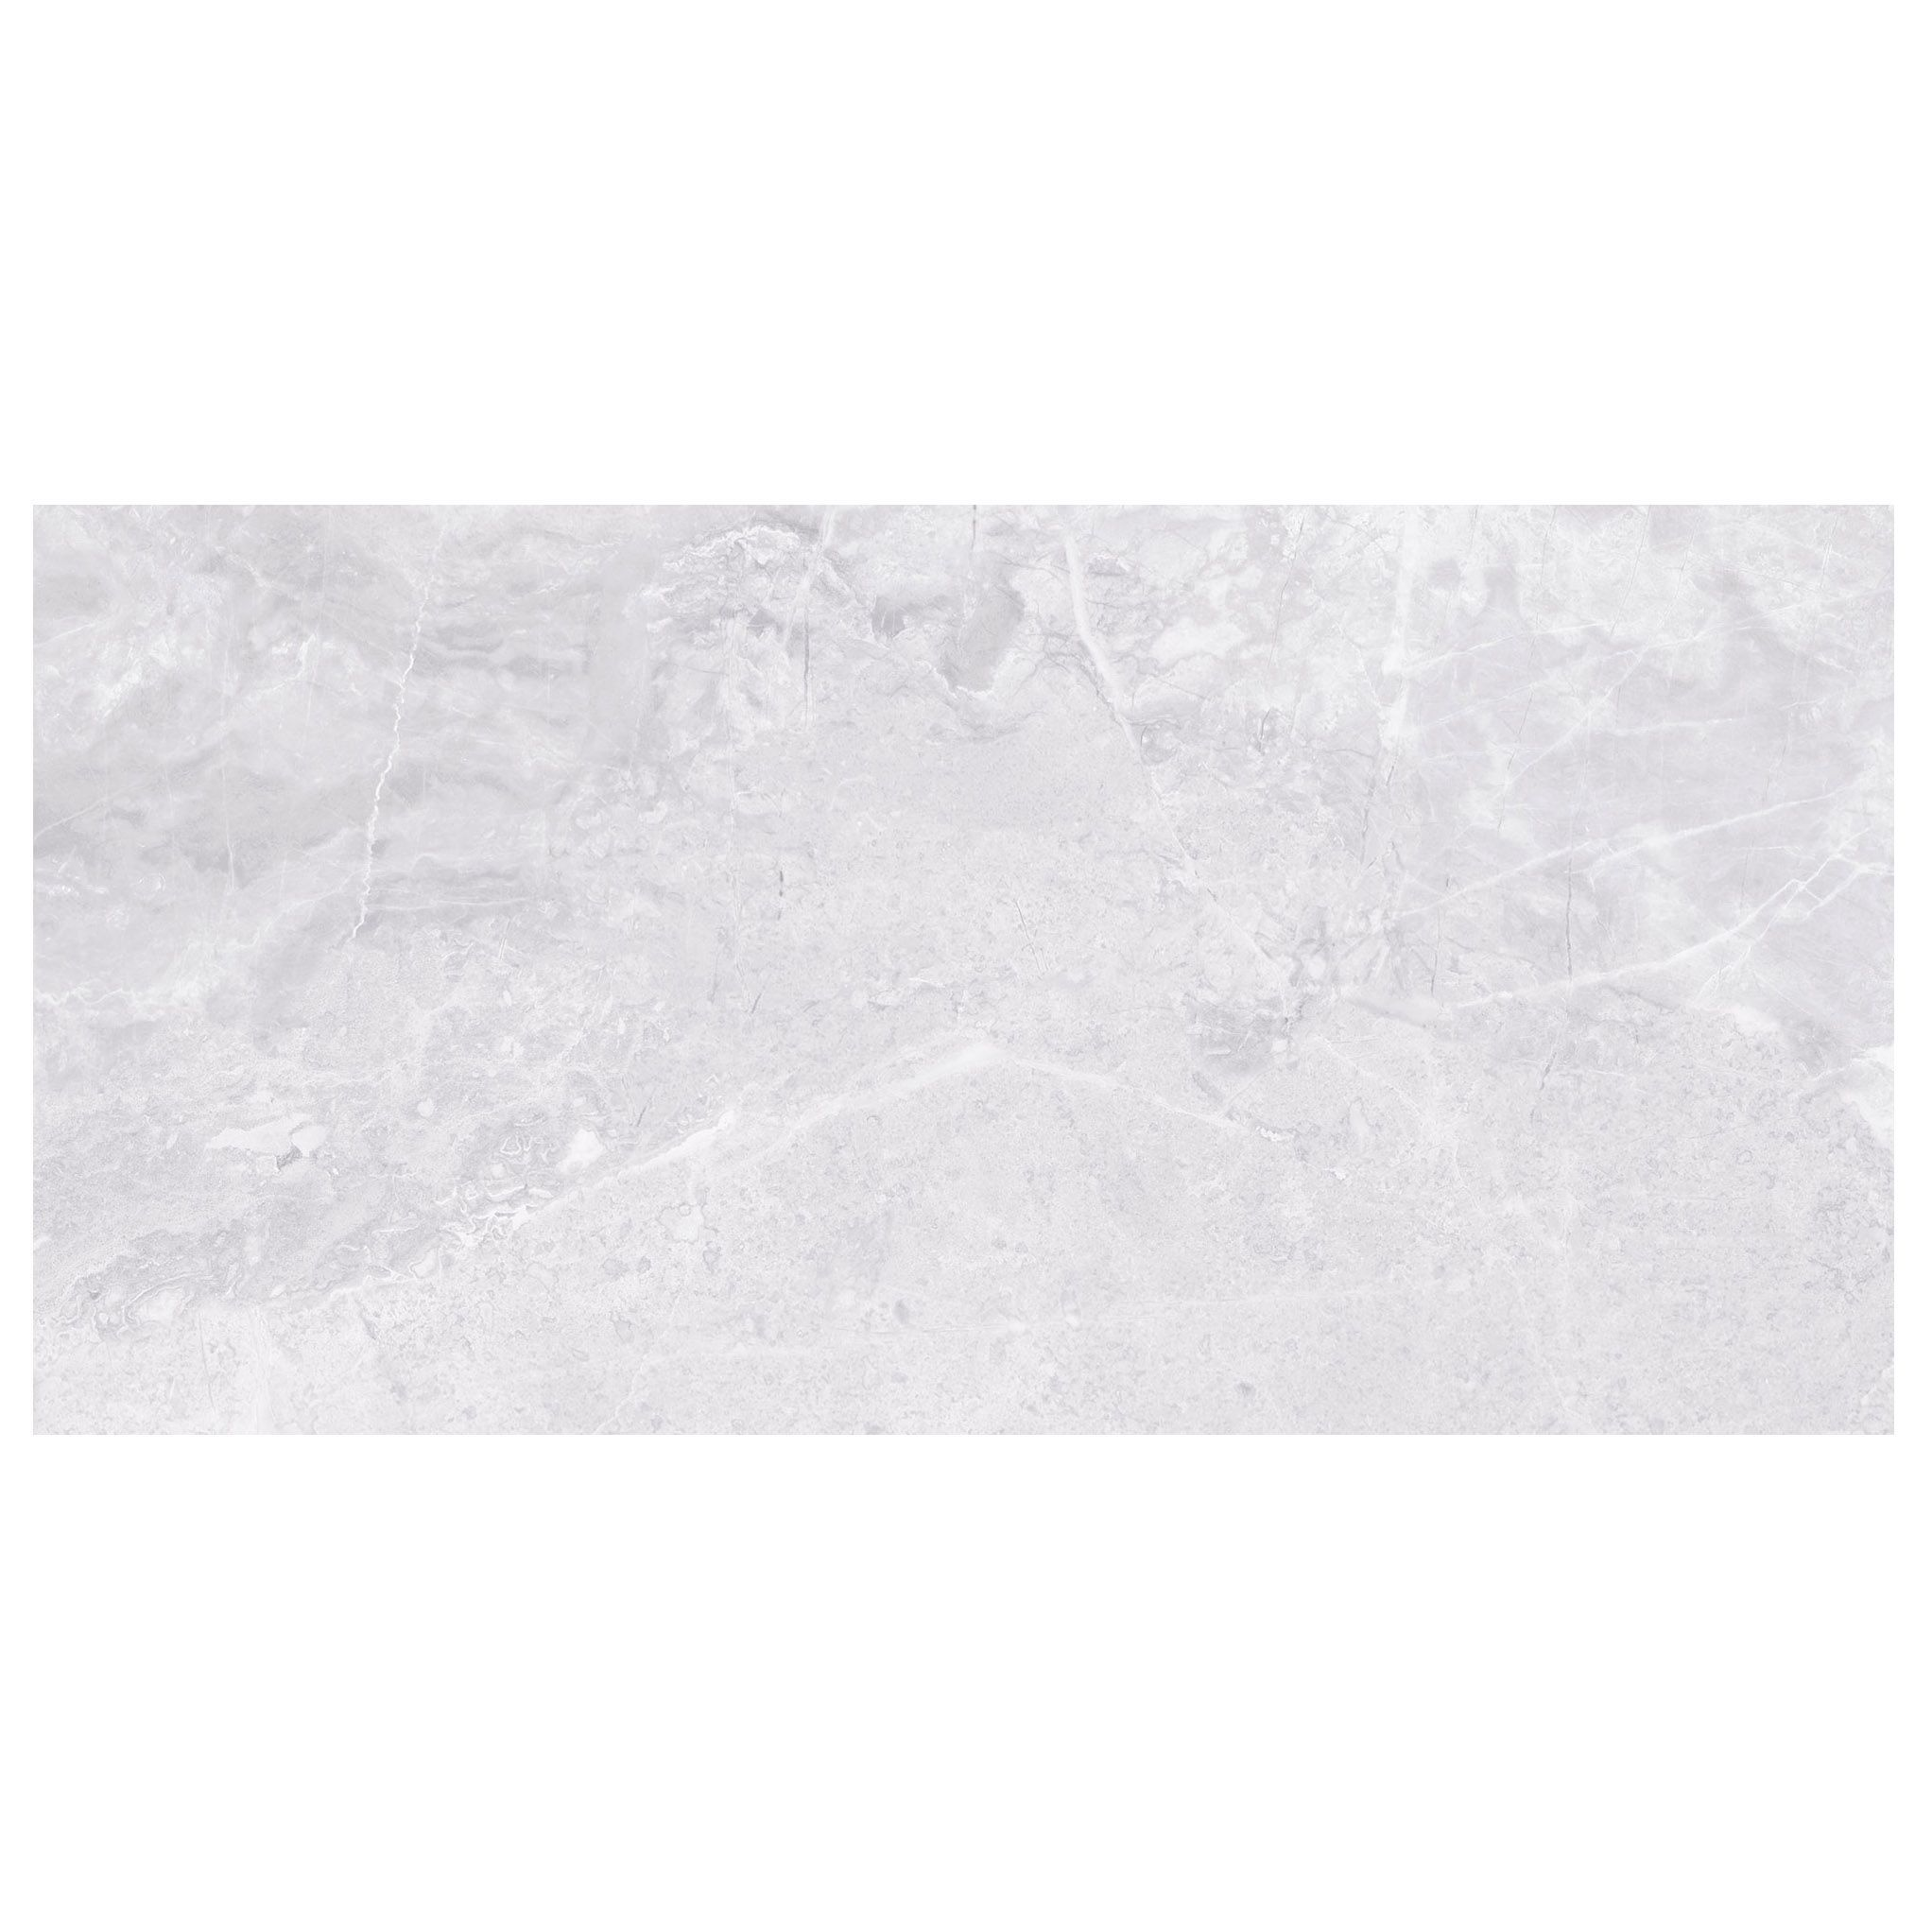 Silverthorne mist marble stone effect ceramic wall tile pack of 8 silverthorne mist marble stone effect ceramic wall tile pack of 8 l dailygadgetfo Images